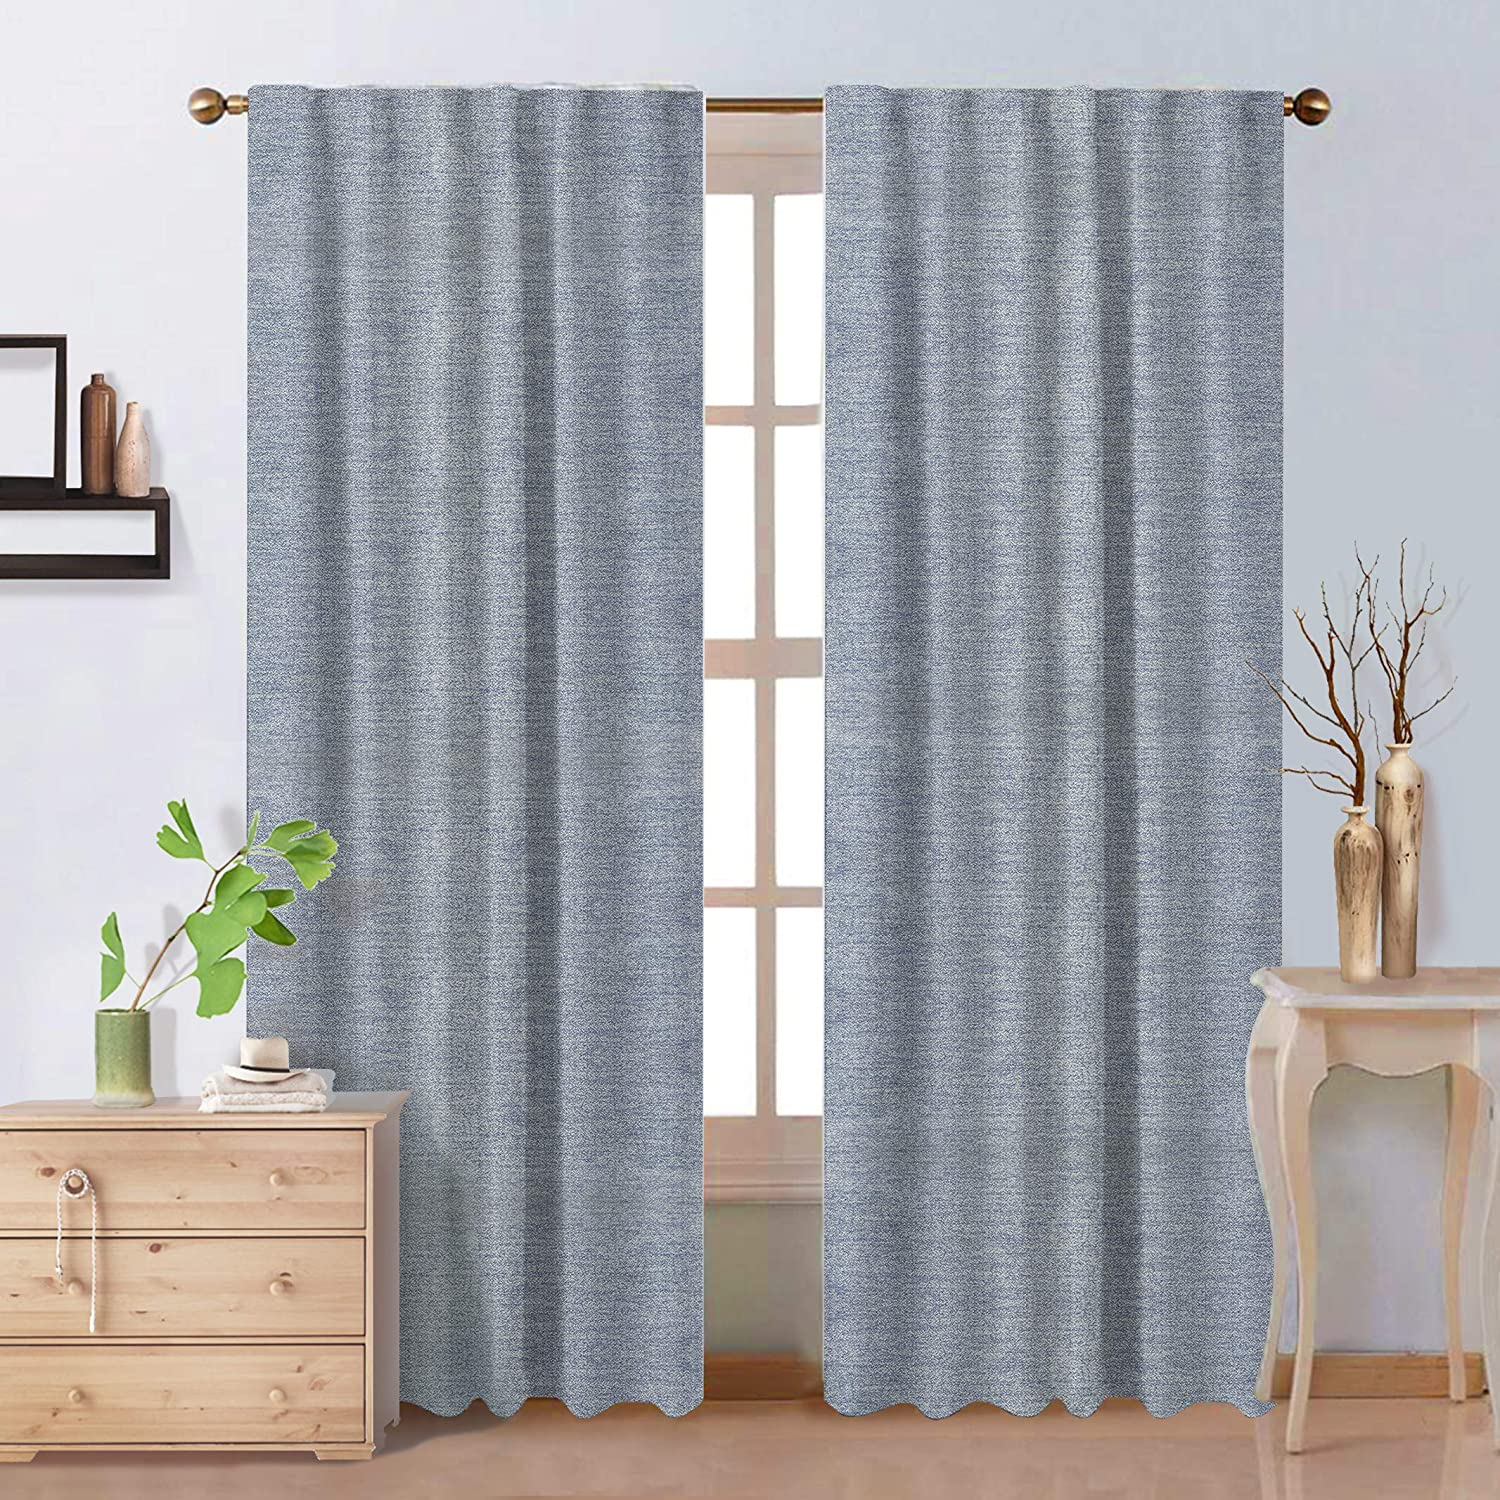 PerfeCurtain Light Blue Ice Linen Semi Blackout Curtains, 52 x 63 inch Back Tab and Rod Pocket Room Darkening Drapes, 2 Pieces